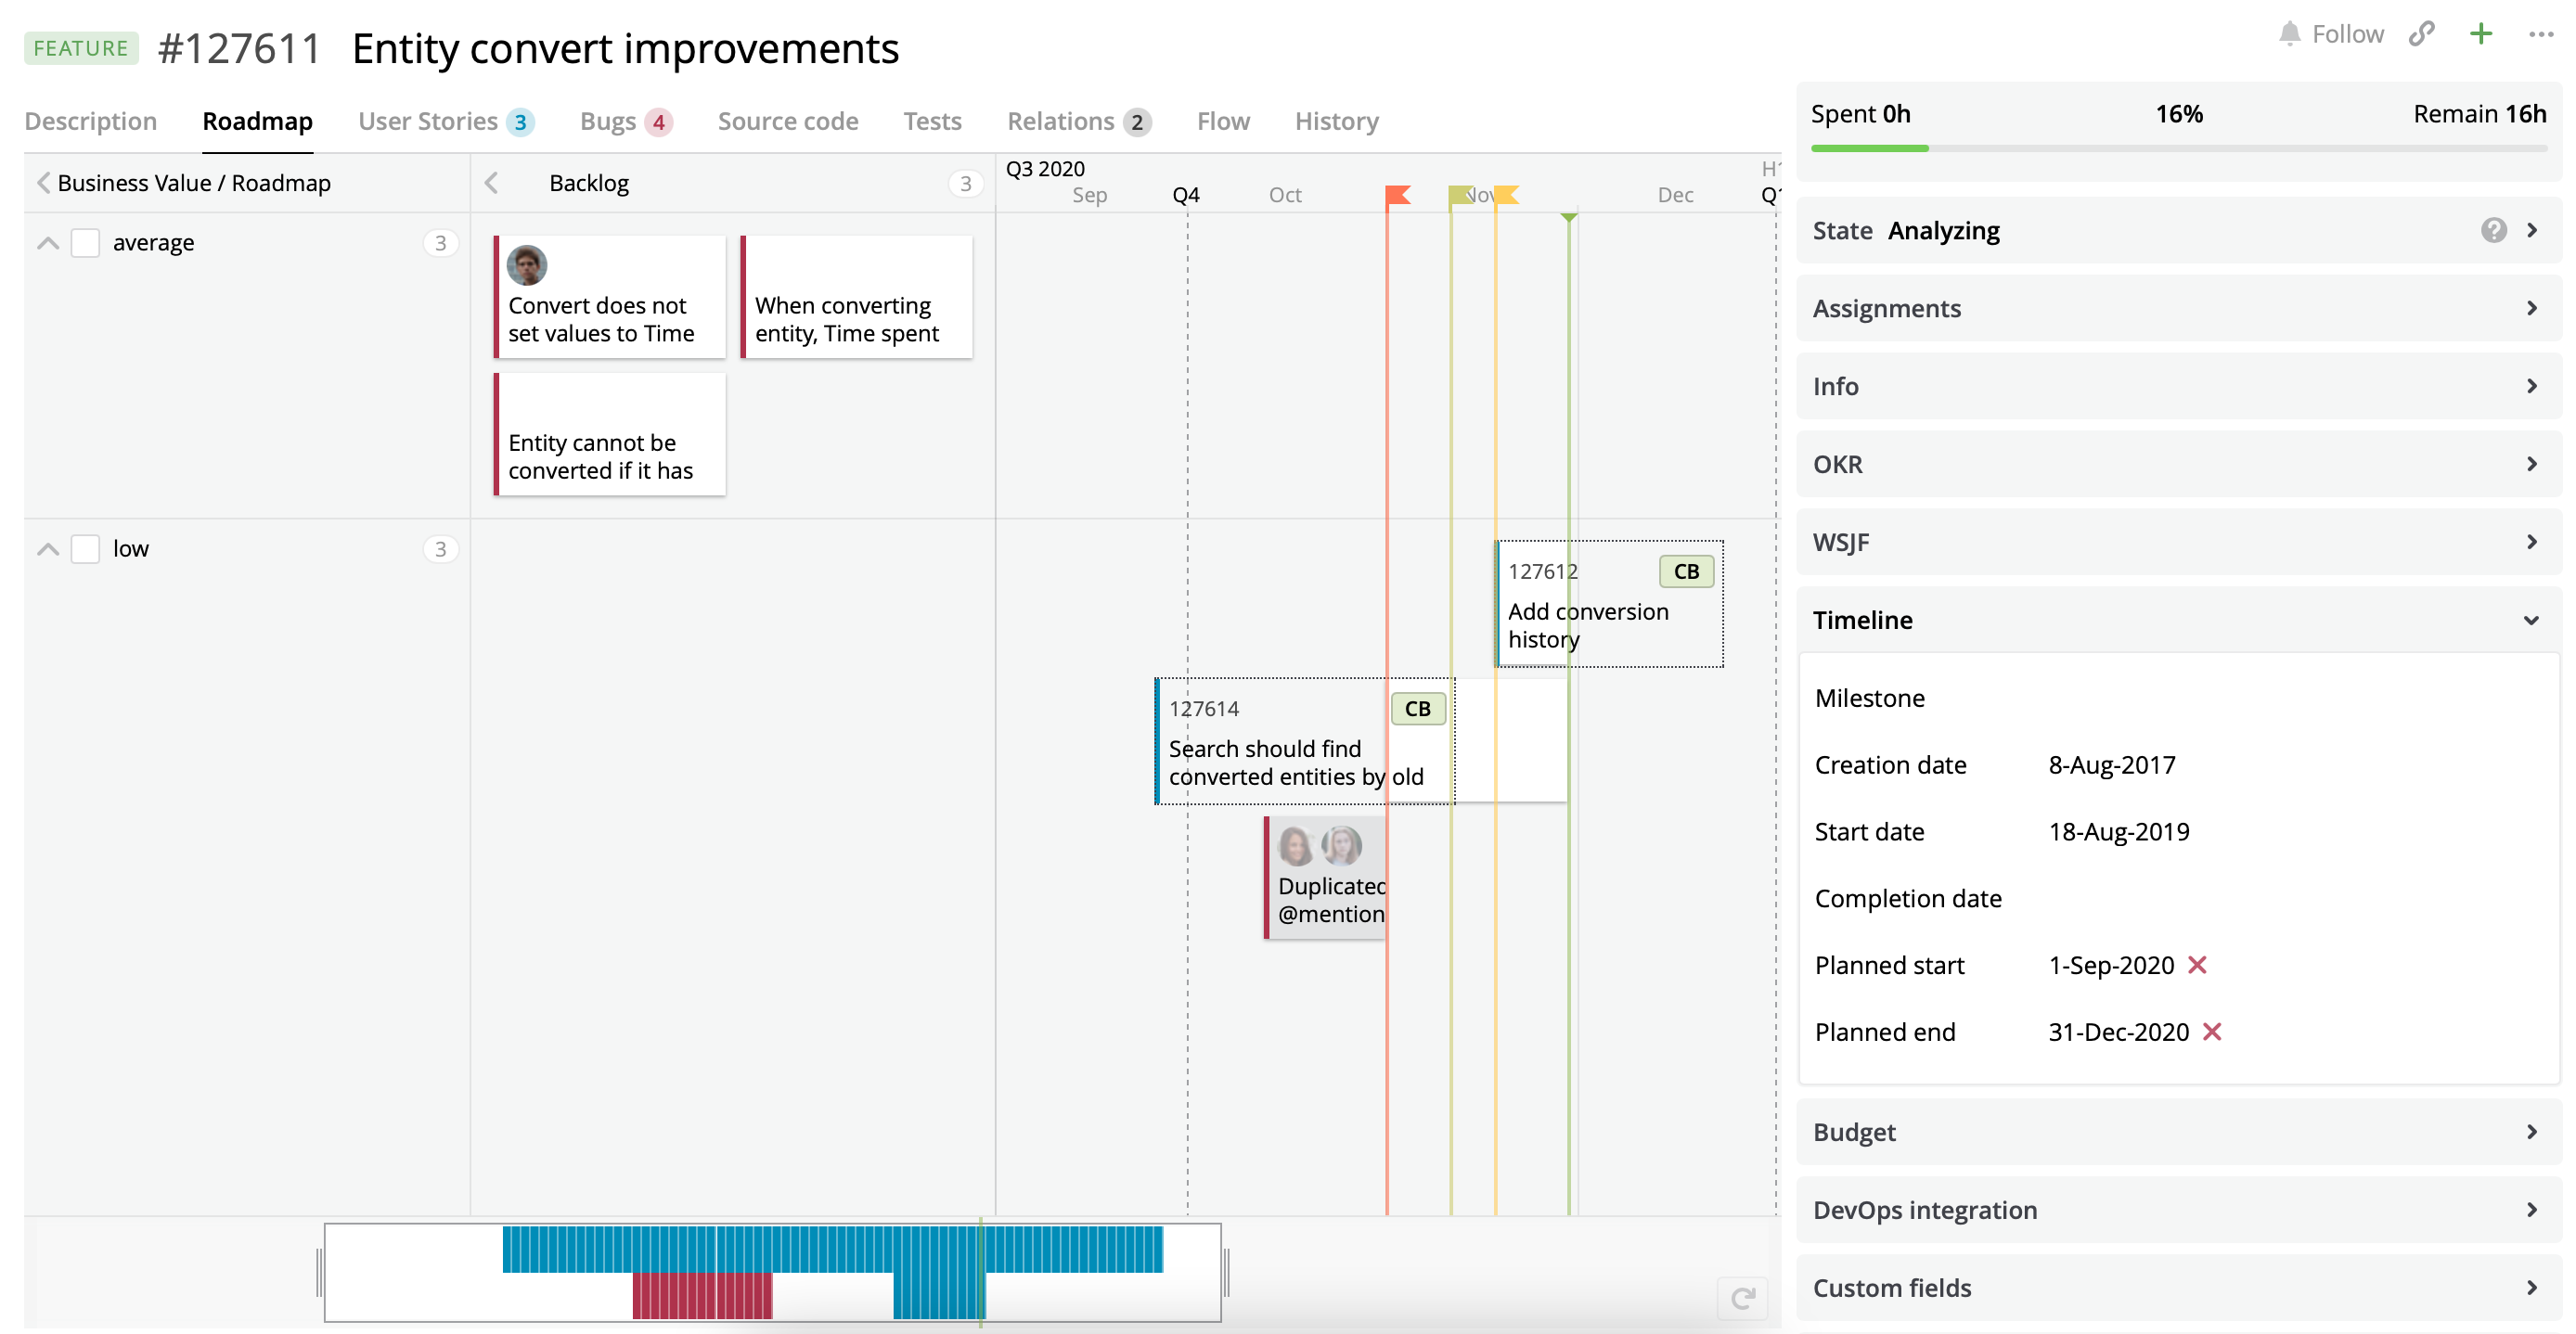 A Roadmap view with the customized cards for User Stories and Bugs.